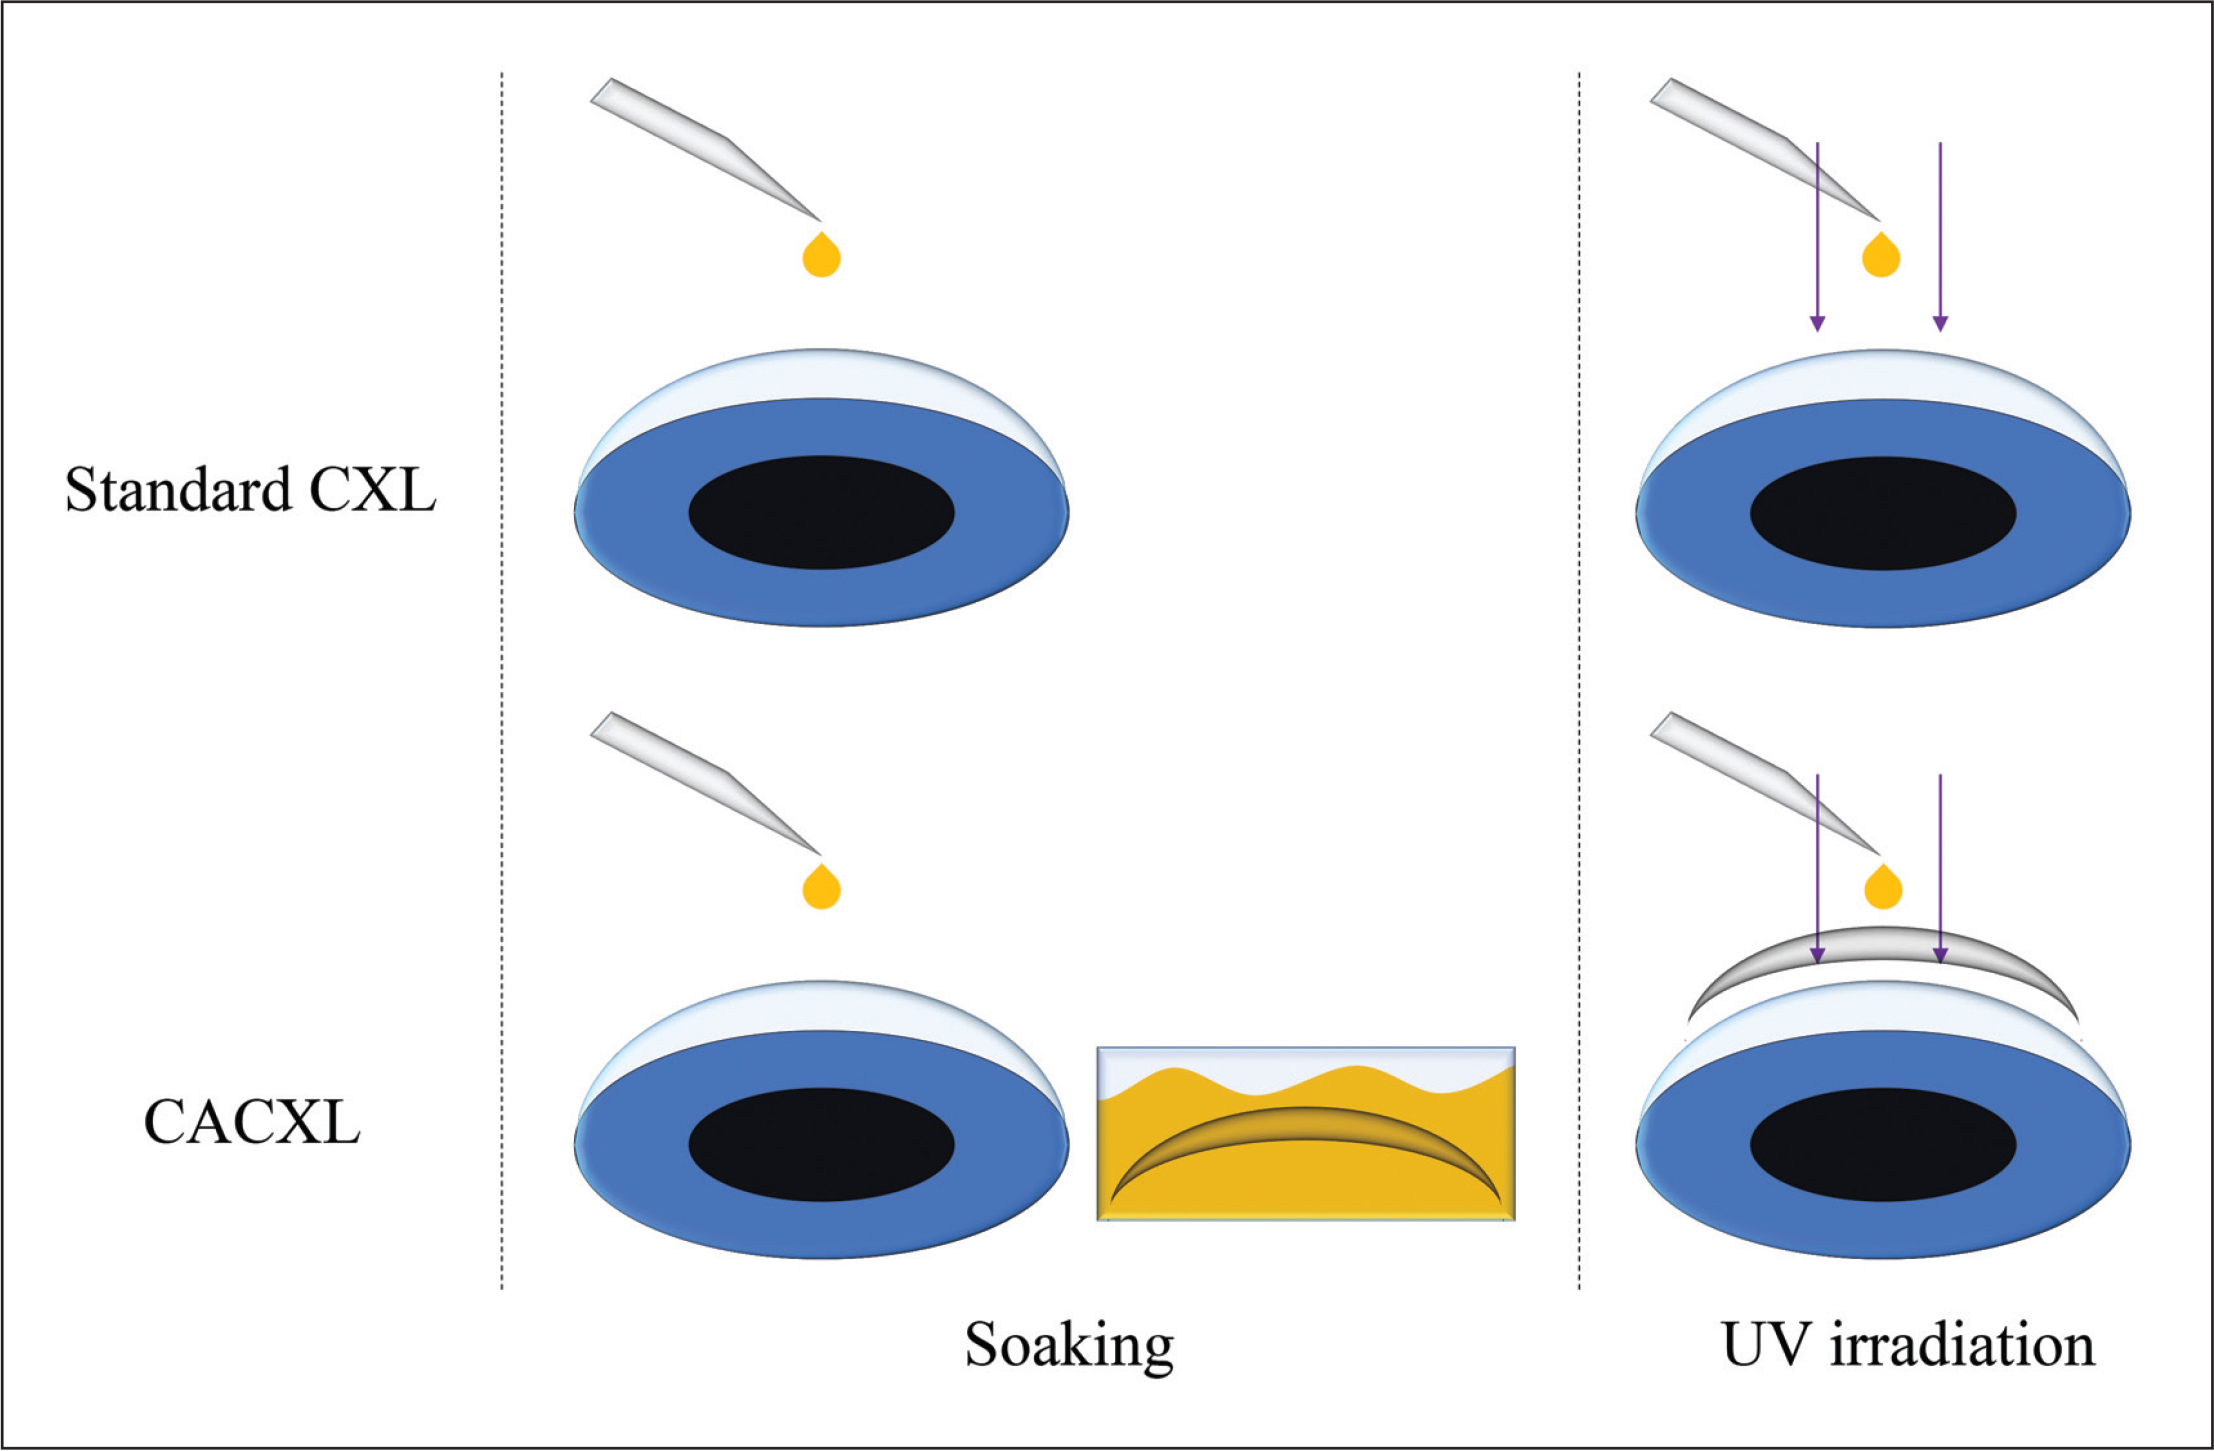 Corneal cross-linking (CXL) protocols for standard CXL and contact lens–assisted CXL (CACXL). Hydrophilic contact lenses were used to make riboflavin solution penetrate through contact lenses and diffuse into the stroma. Thus, there was no need to lift contact lenses during ultraviolet (UV) irradiation.